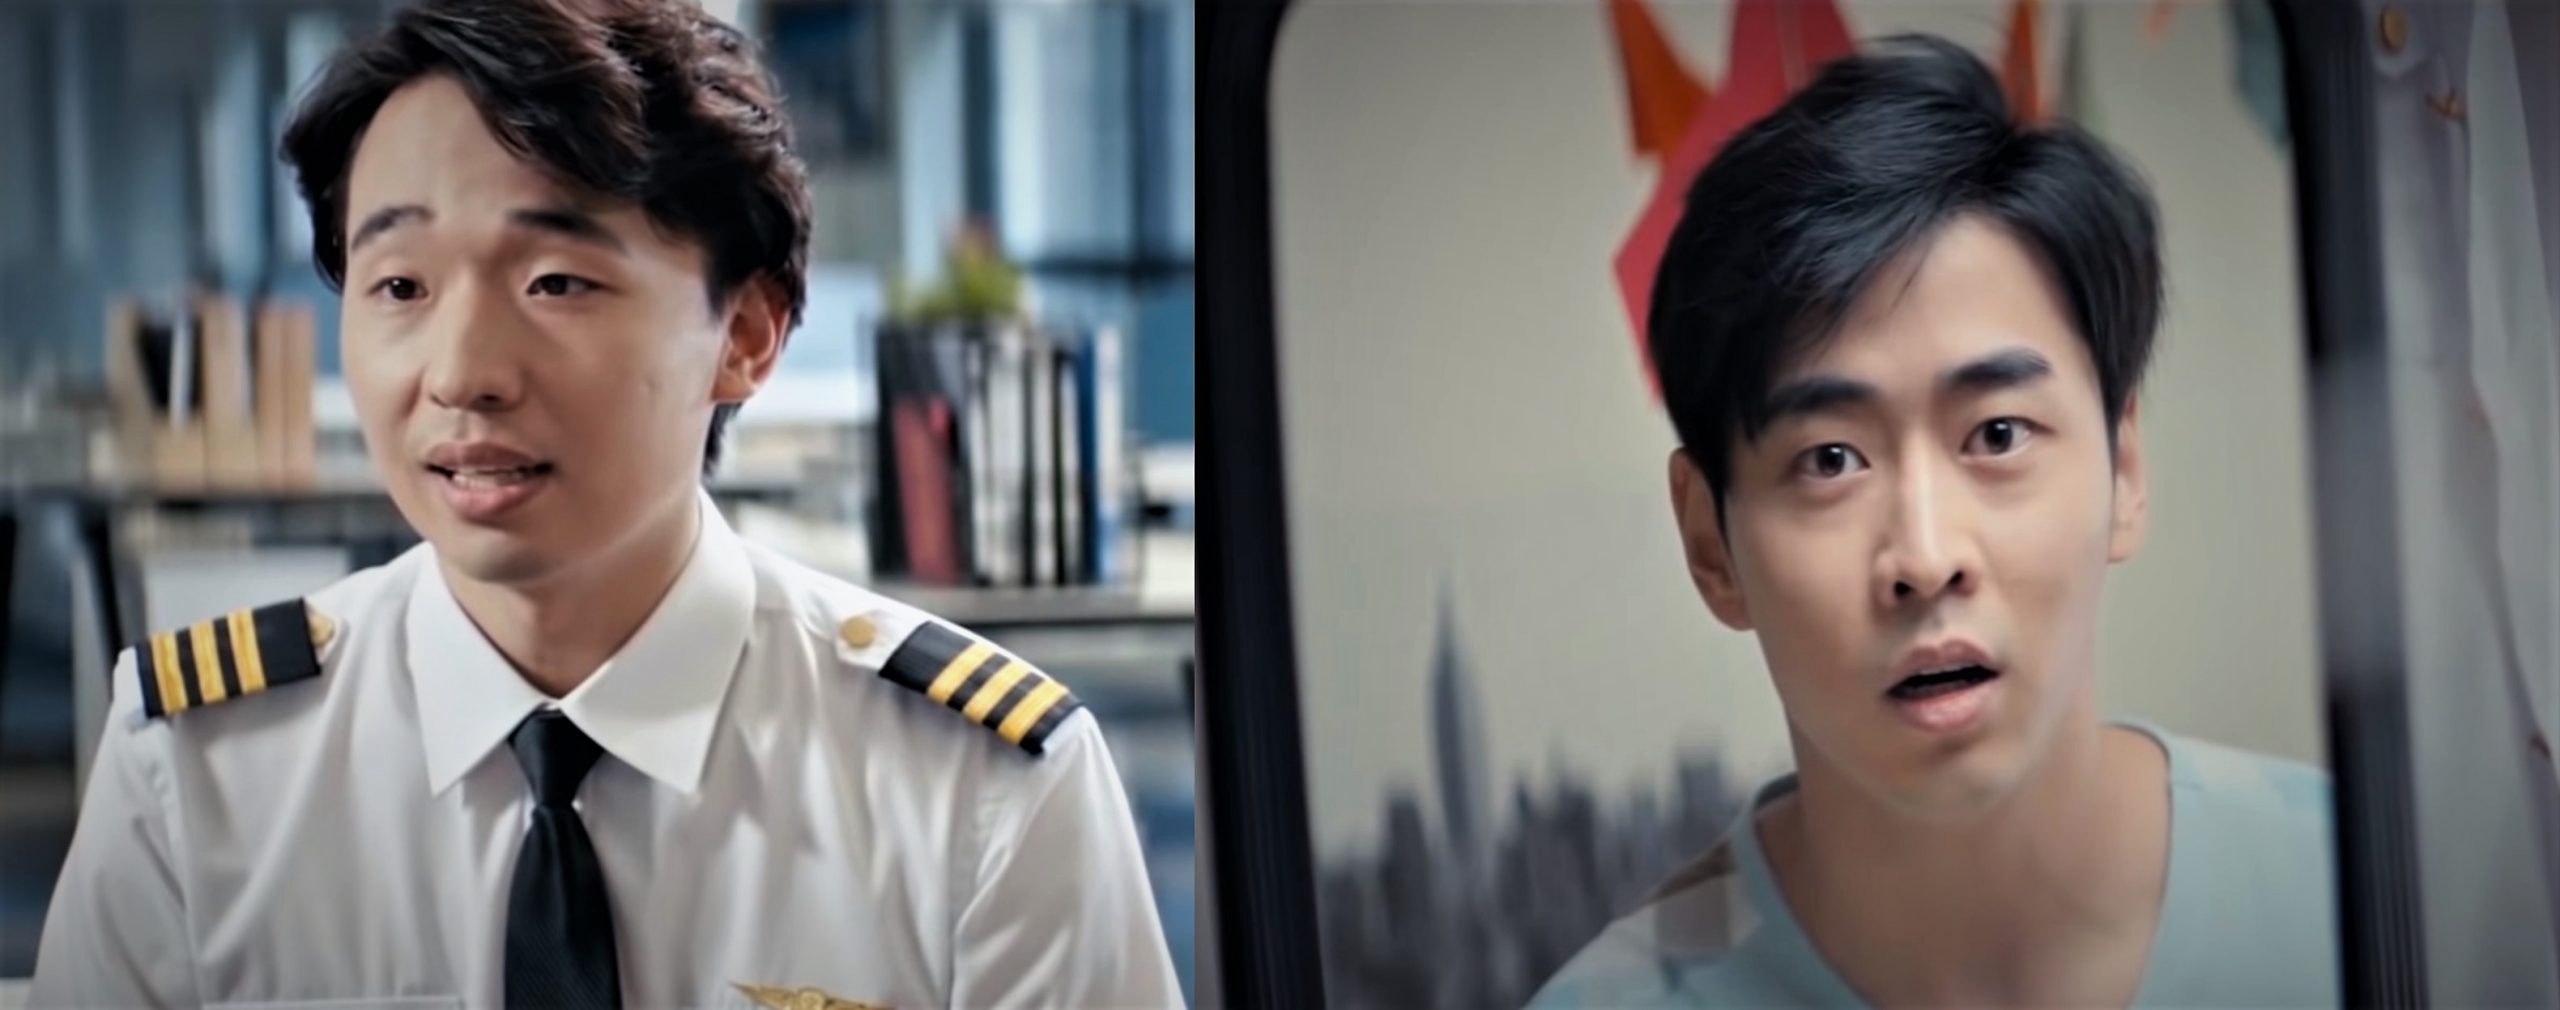 The Chinese Captain (2019) was directed by An Jiaxing and starring Cao Tiankai, Liu Xuetao and Wang Chao.